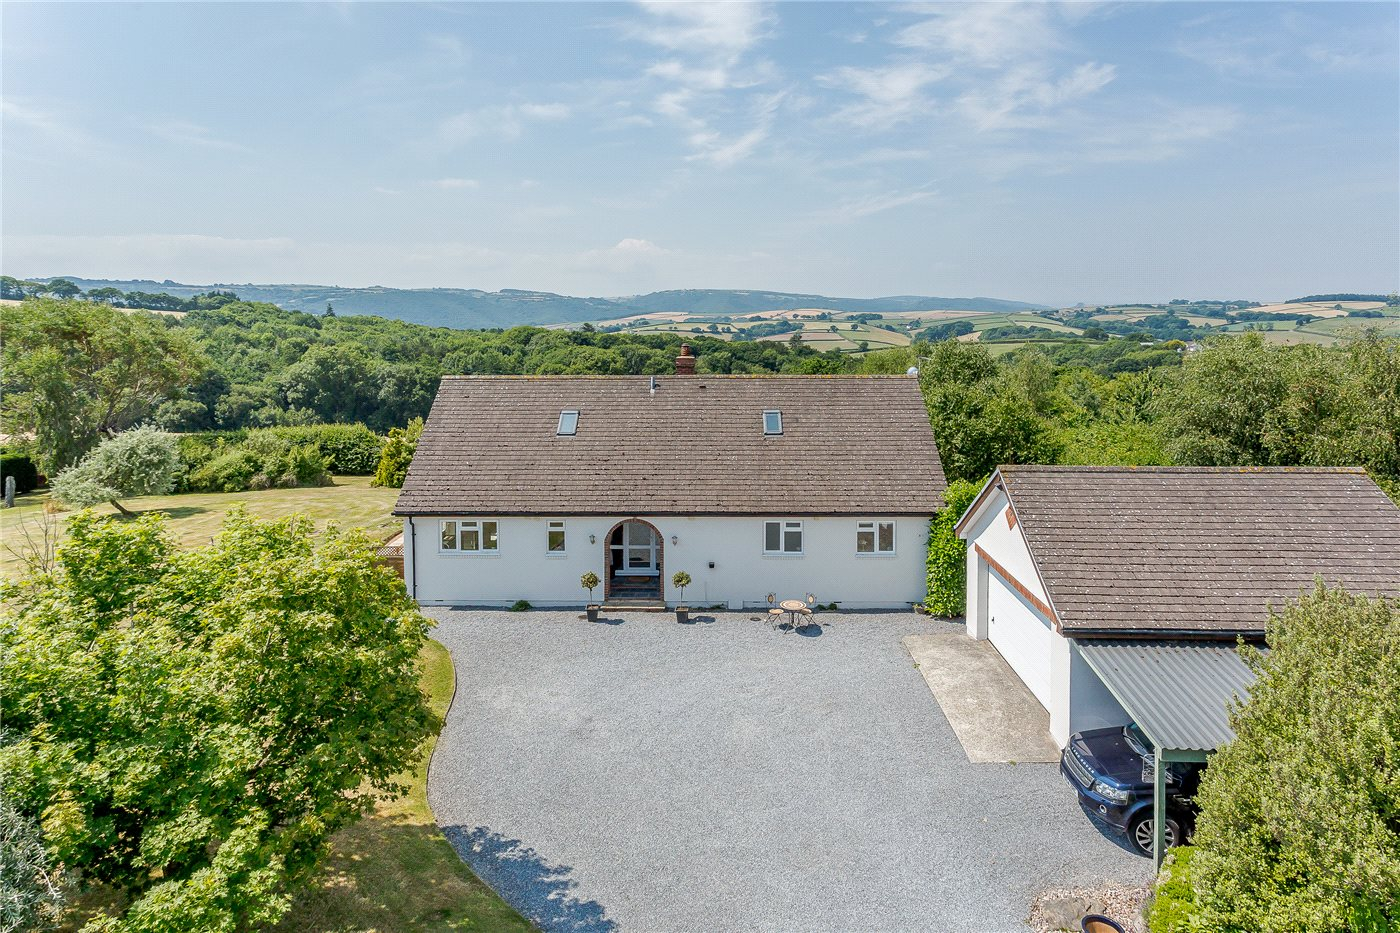 A four-bedroom house in 16 acres with some of the best views of Dartmoor.